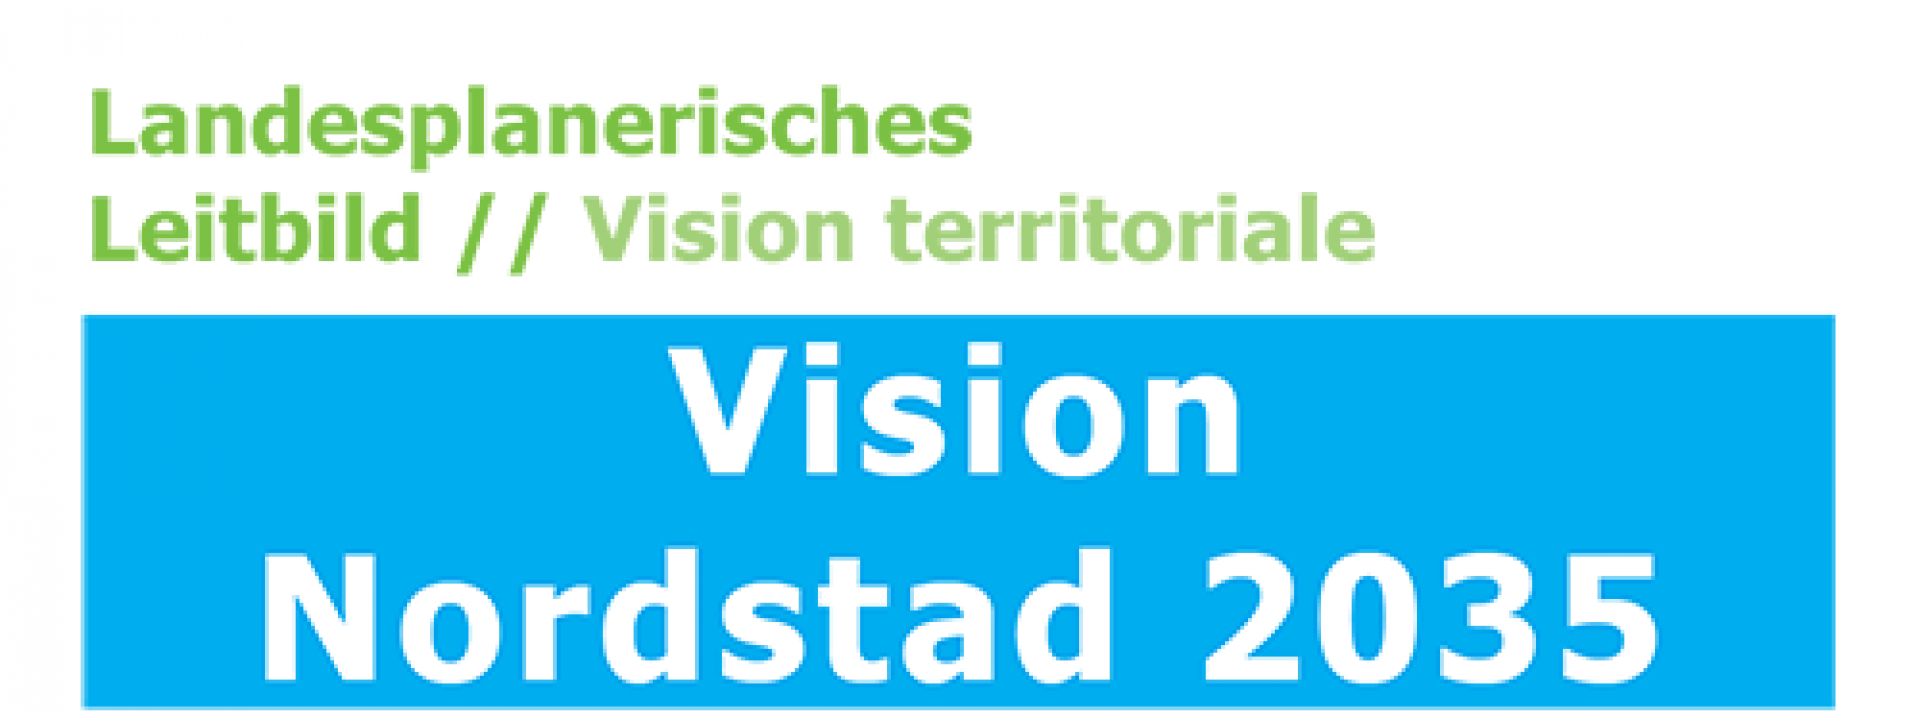 Video - Vision Nordstad 2035 - LU-FR